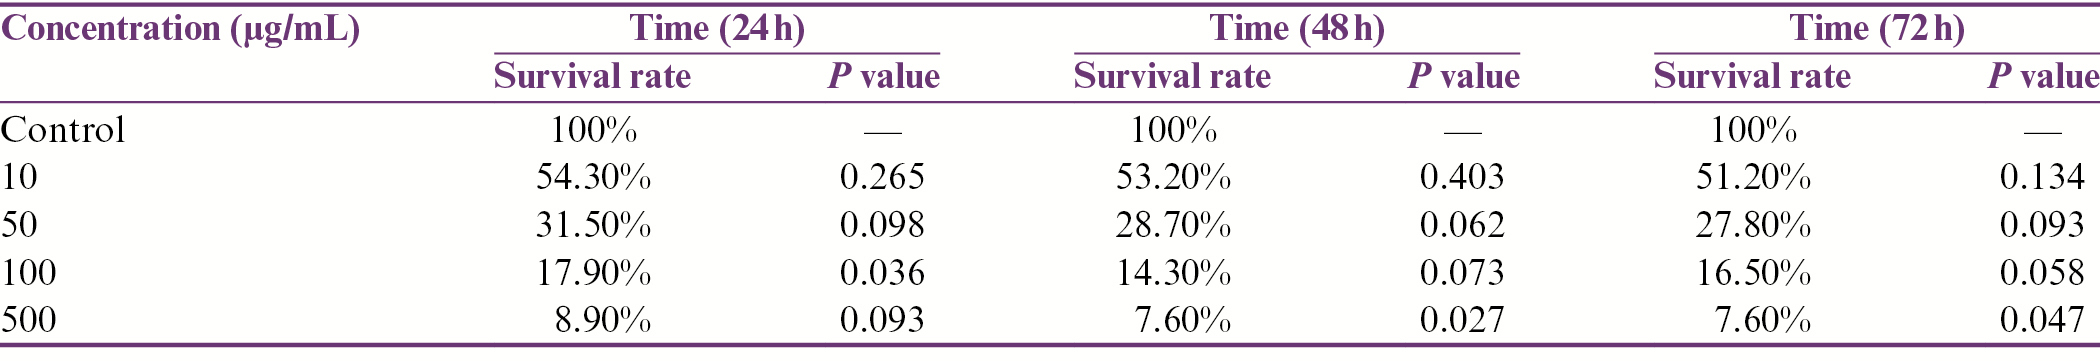 Table 6: Survival rate of human primary prosthetic epithelial cells at 24, 48, and 72h after treatment with juglone methanolic combination at concentrations of 10, 50, 100, and 500 μg/mL